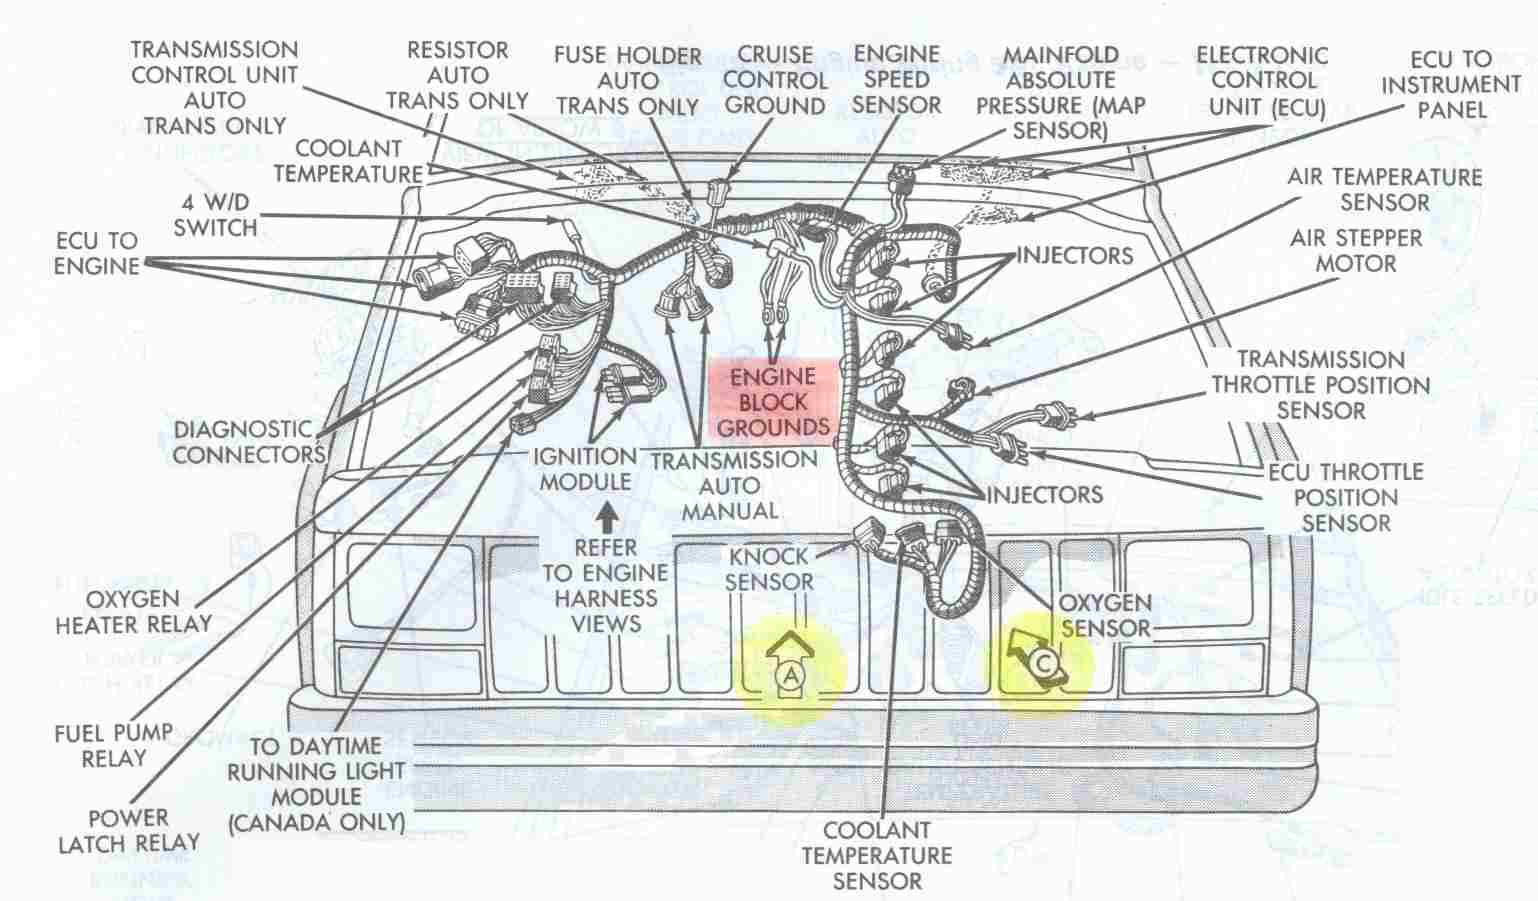 hight resolution of jeep 4 7 engine diagram wiring diagram operations 2001 jeep grand cherokee fuse panel 2001 jeep grand cherokee 4 7 fuse diagram